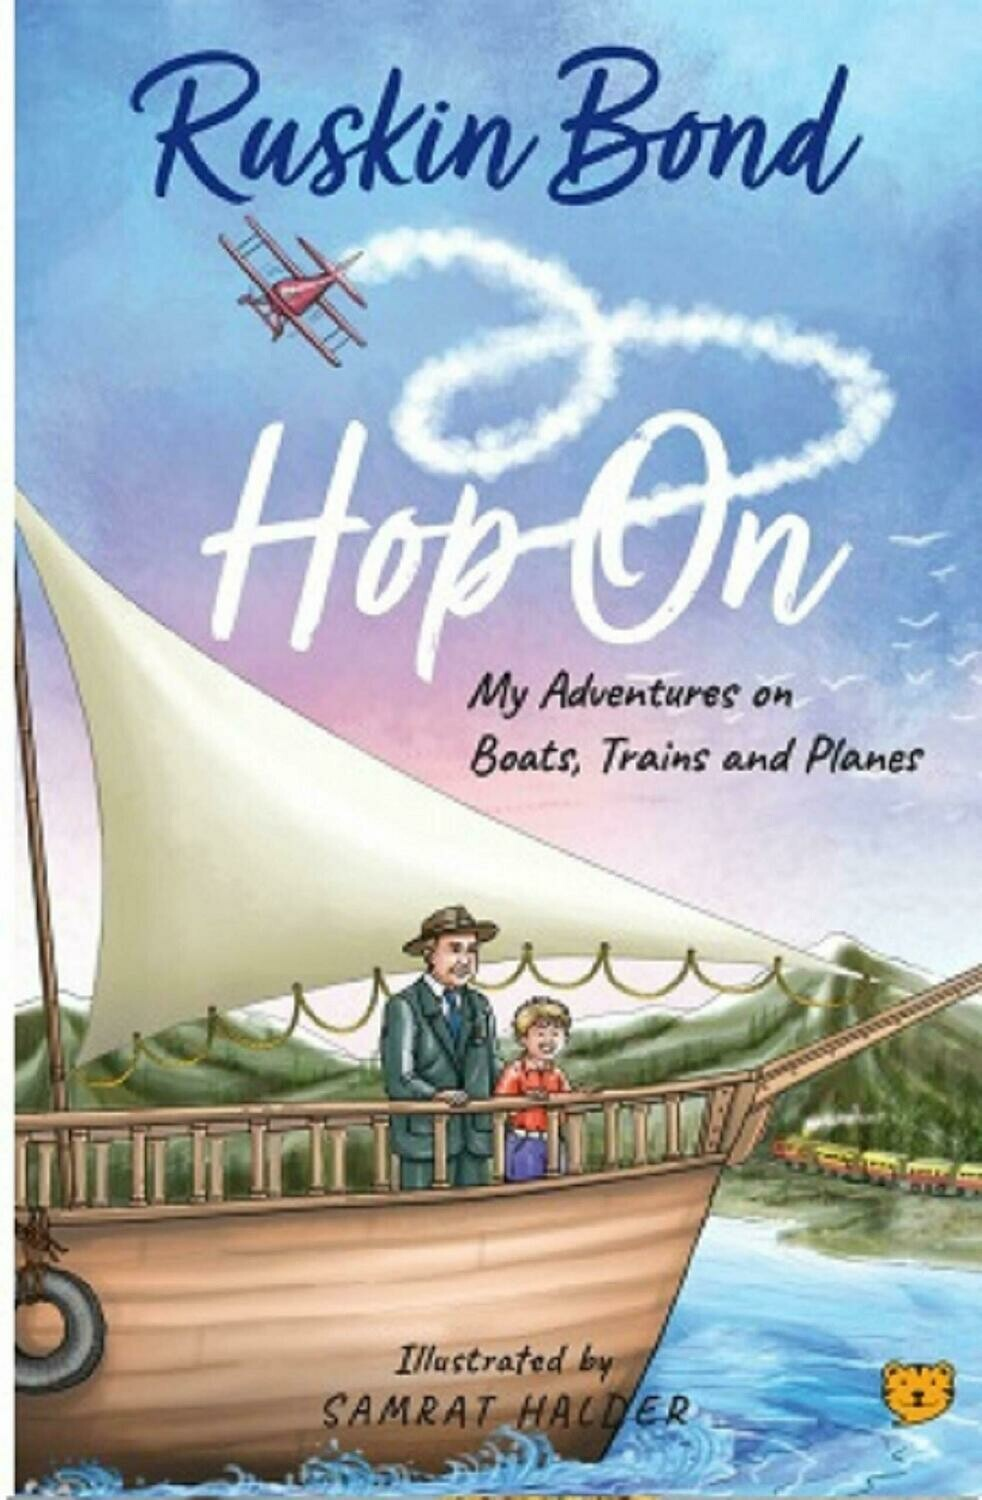 Hop On: My Adventures on Boats, Trains and Planes